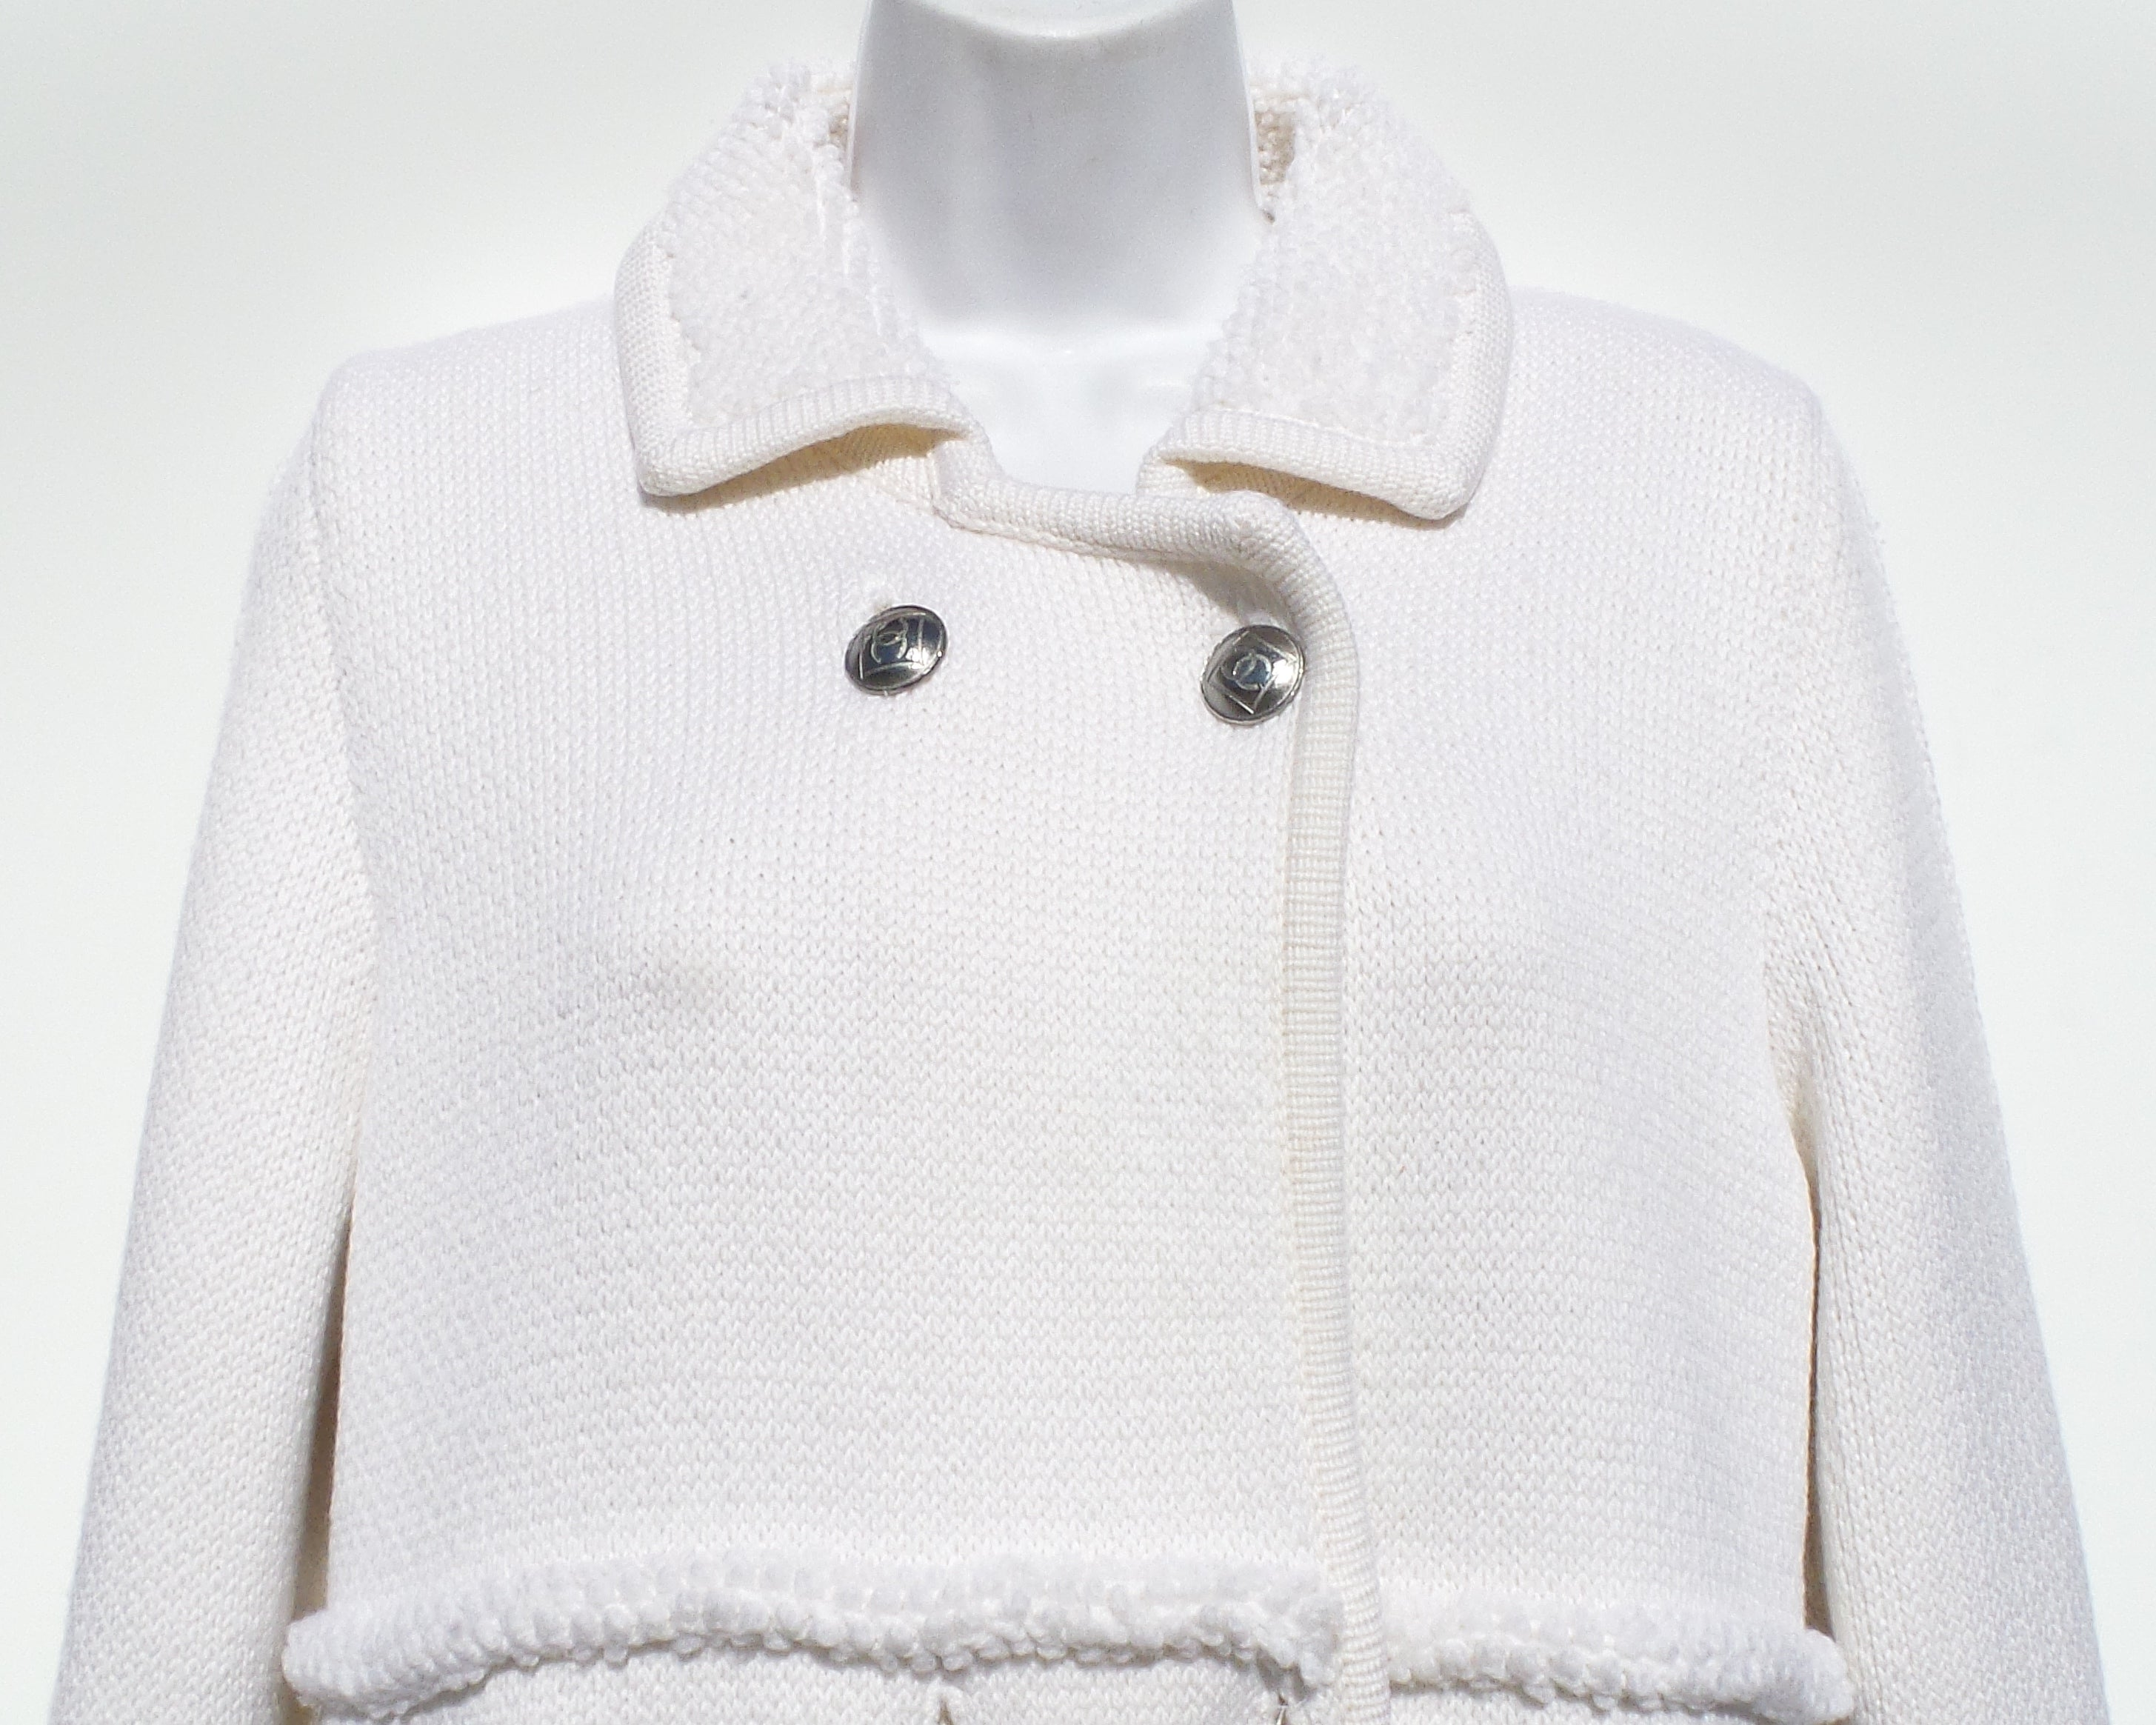 CHANEL 08A Ivory Creme Double Breast Silver CC Wool Knit Sweater Jacket Coat 44